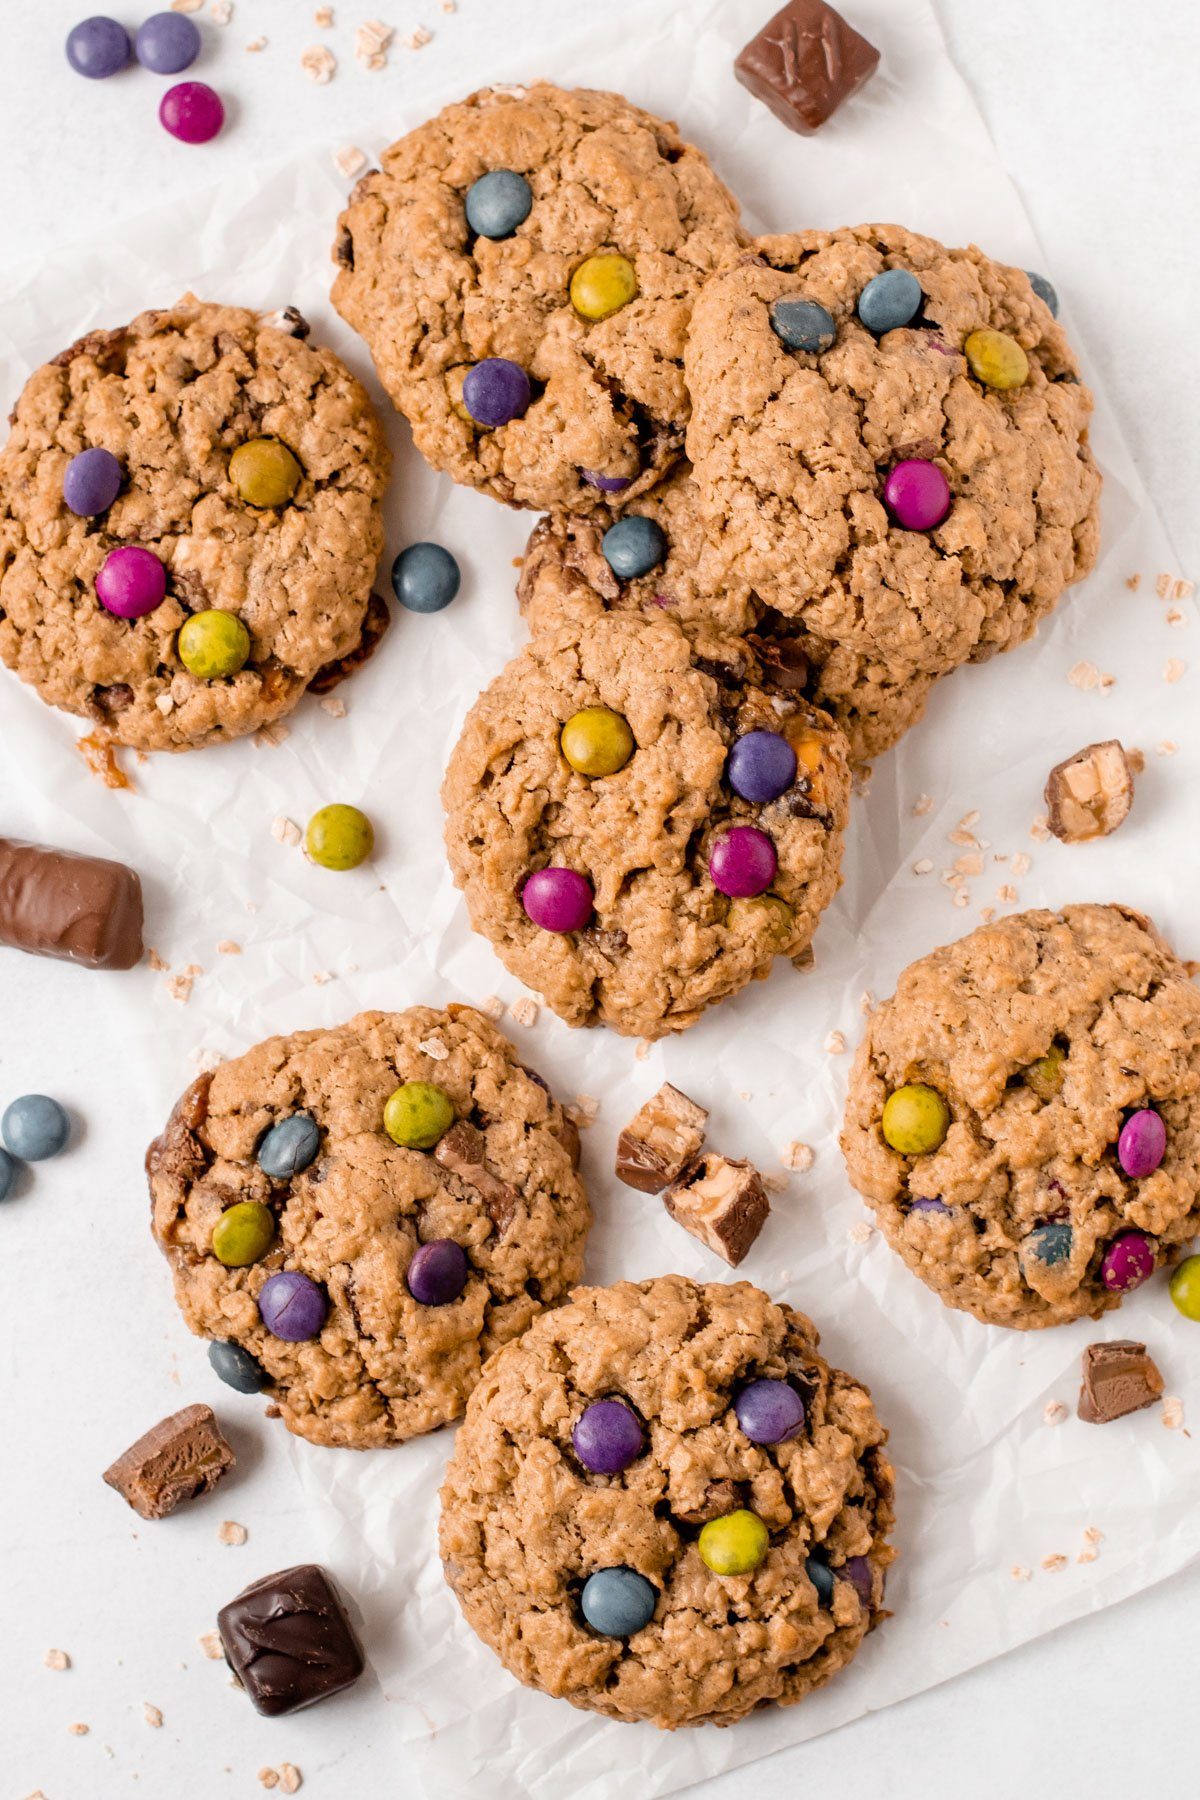 Gluten free monster cookies on a piece of parchment paper surrounded by chopped leftover candy bars.